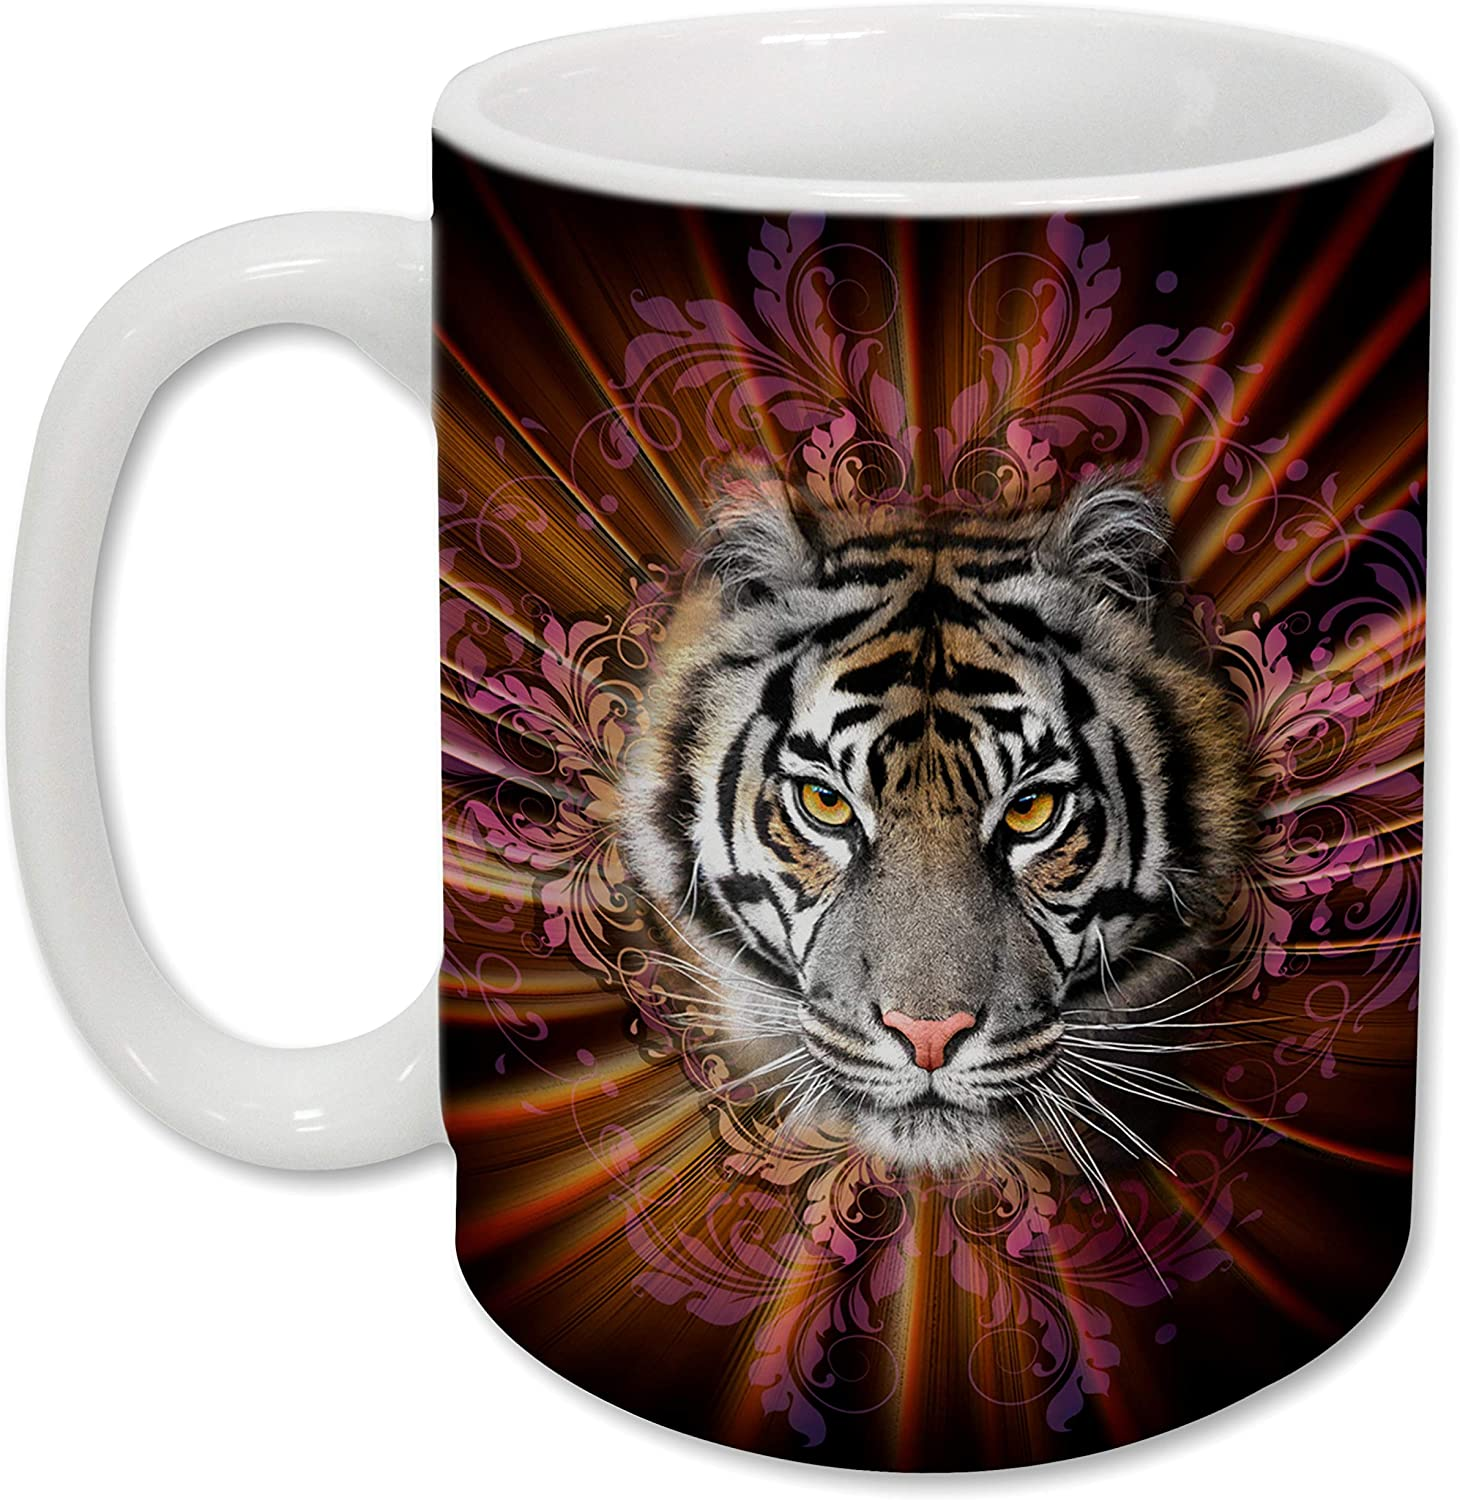 Sweet Gisele | Tiger Mug | Ceramic Coffee Cup | Rich and Vibrant Colors | Perfect Holiday Gift | Dishwasher & Microwave Safe | Great Novelty Item Animal Mugs | 15 Fl. Oz